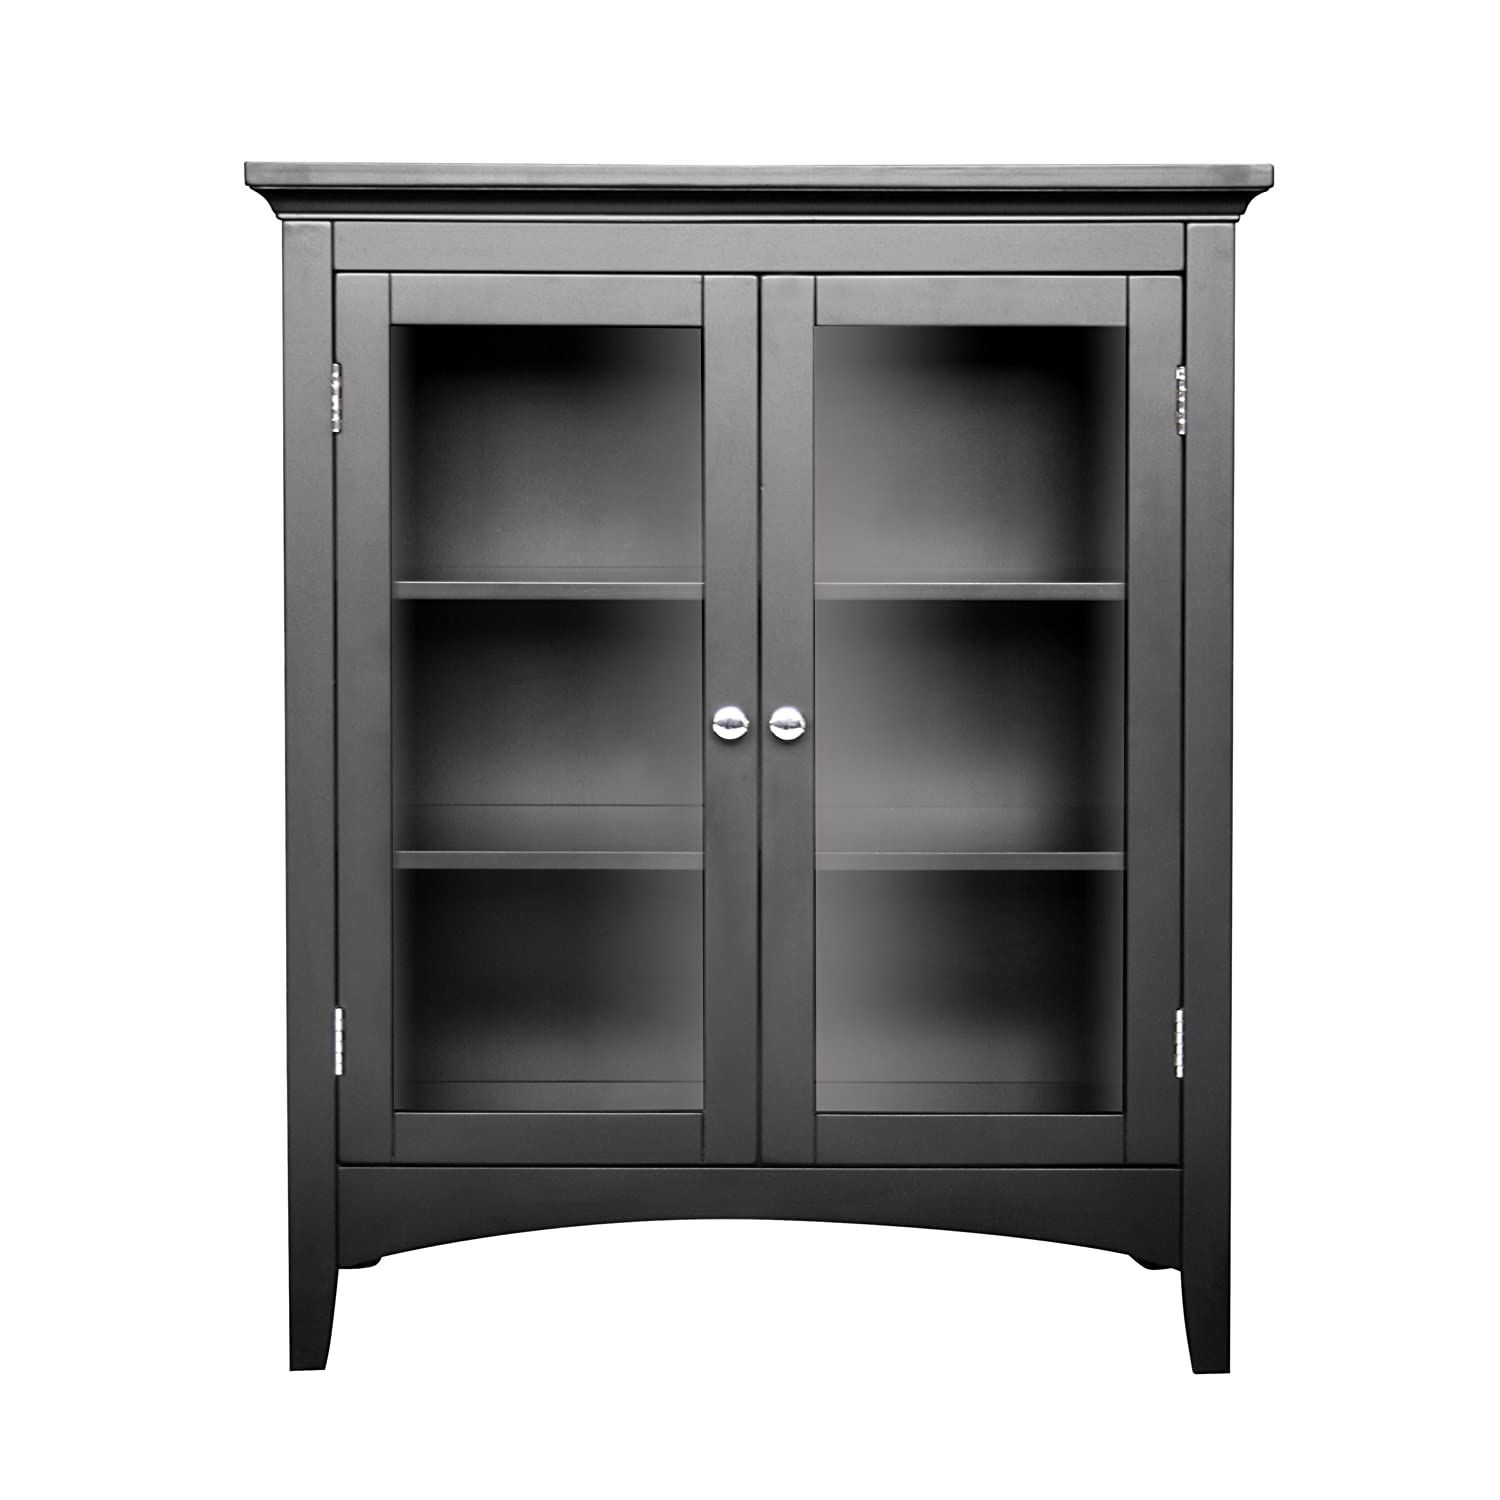 Attirant Amazon.com: Elegant Home Fashions 7633 Madison Double Floor Cabinet Dark  Espresso: Kitchen U0026 Dining